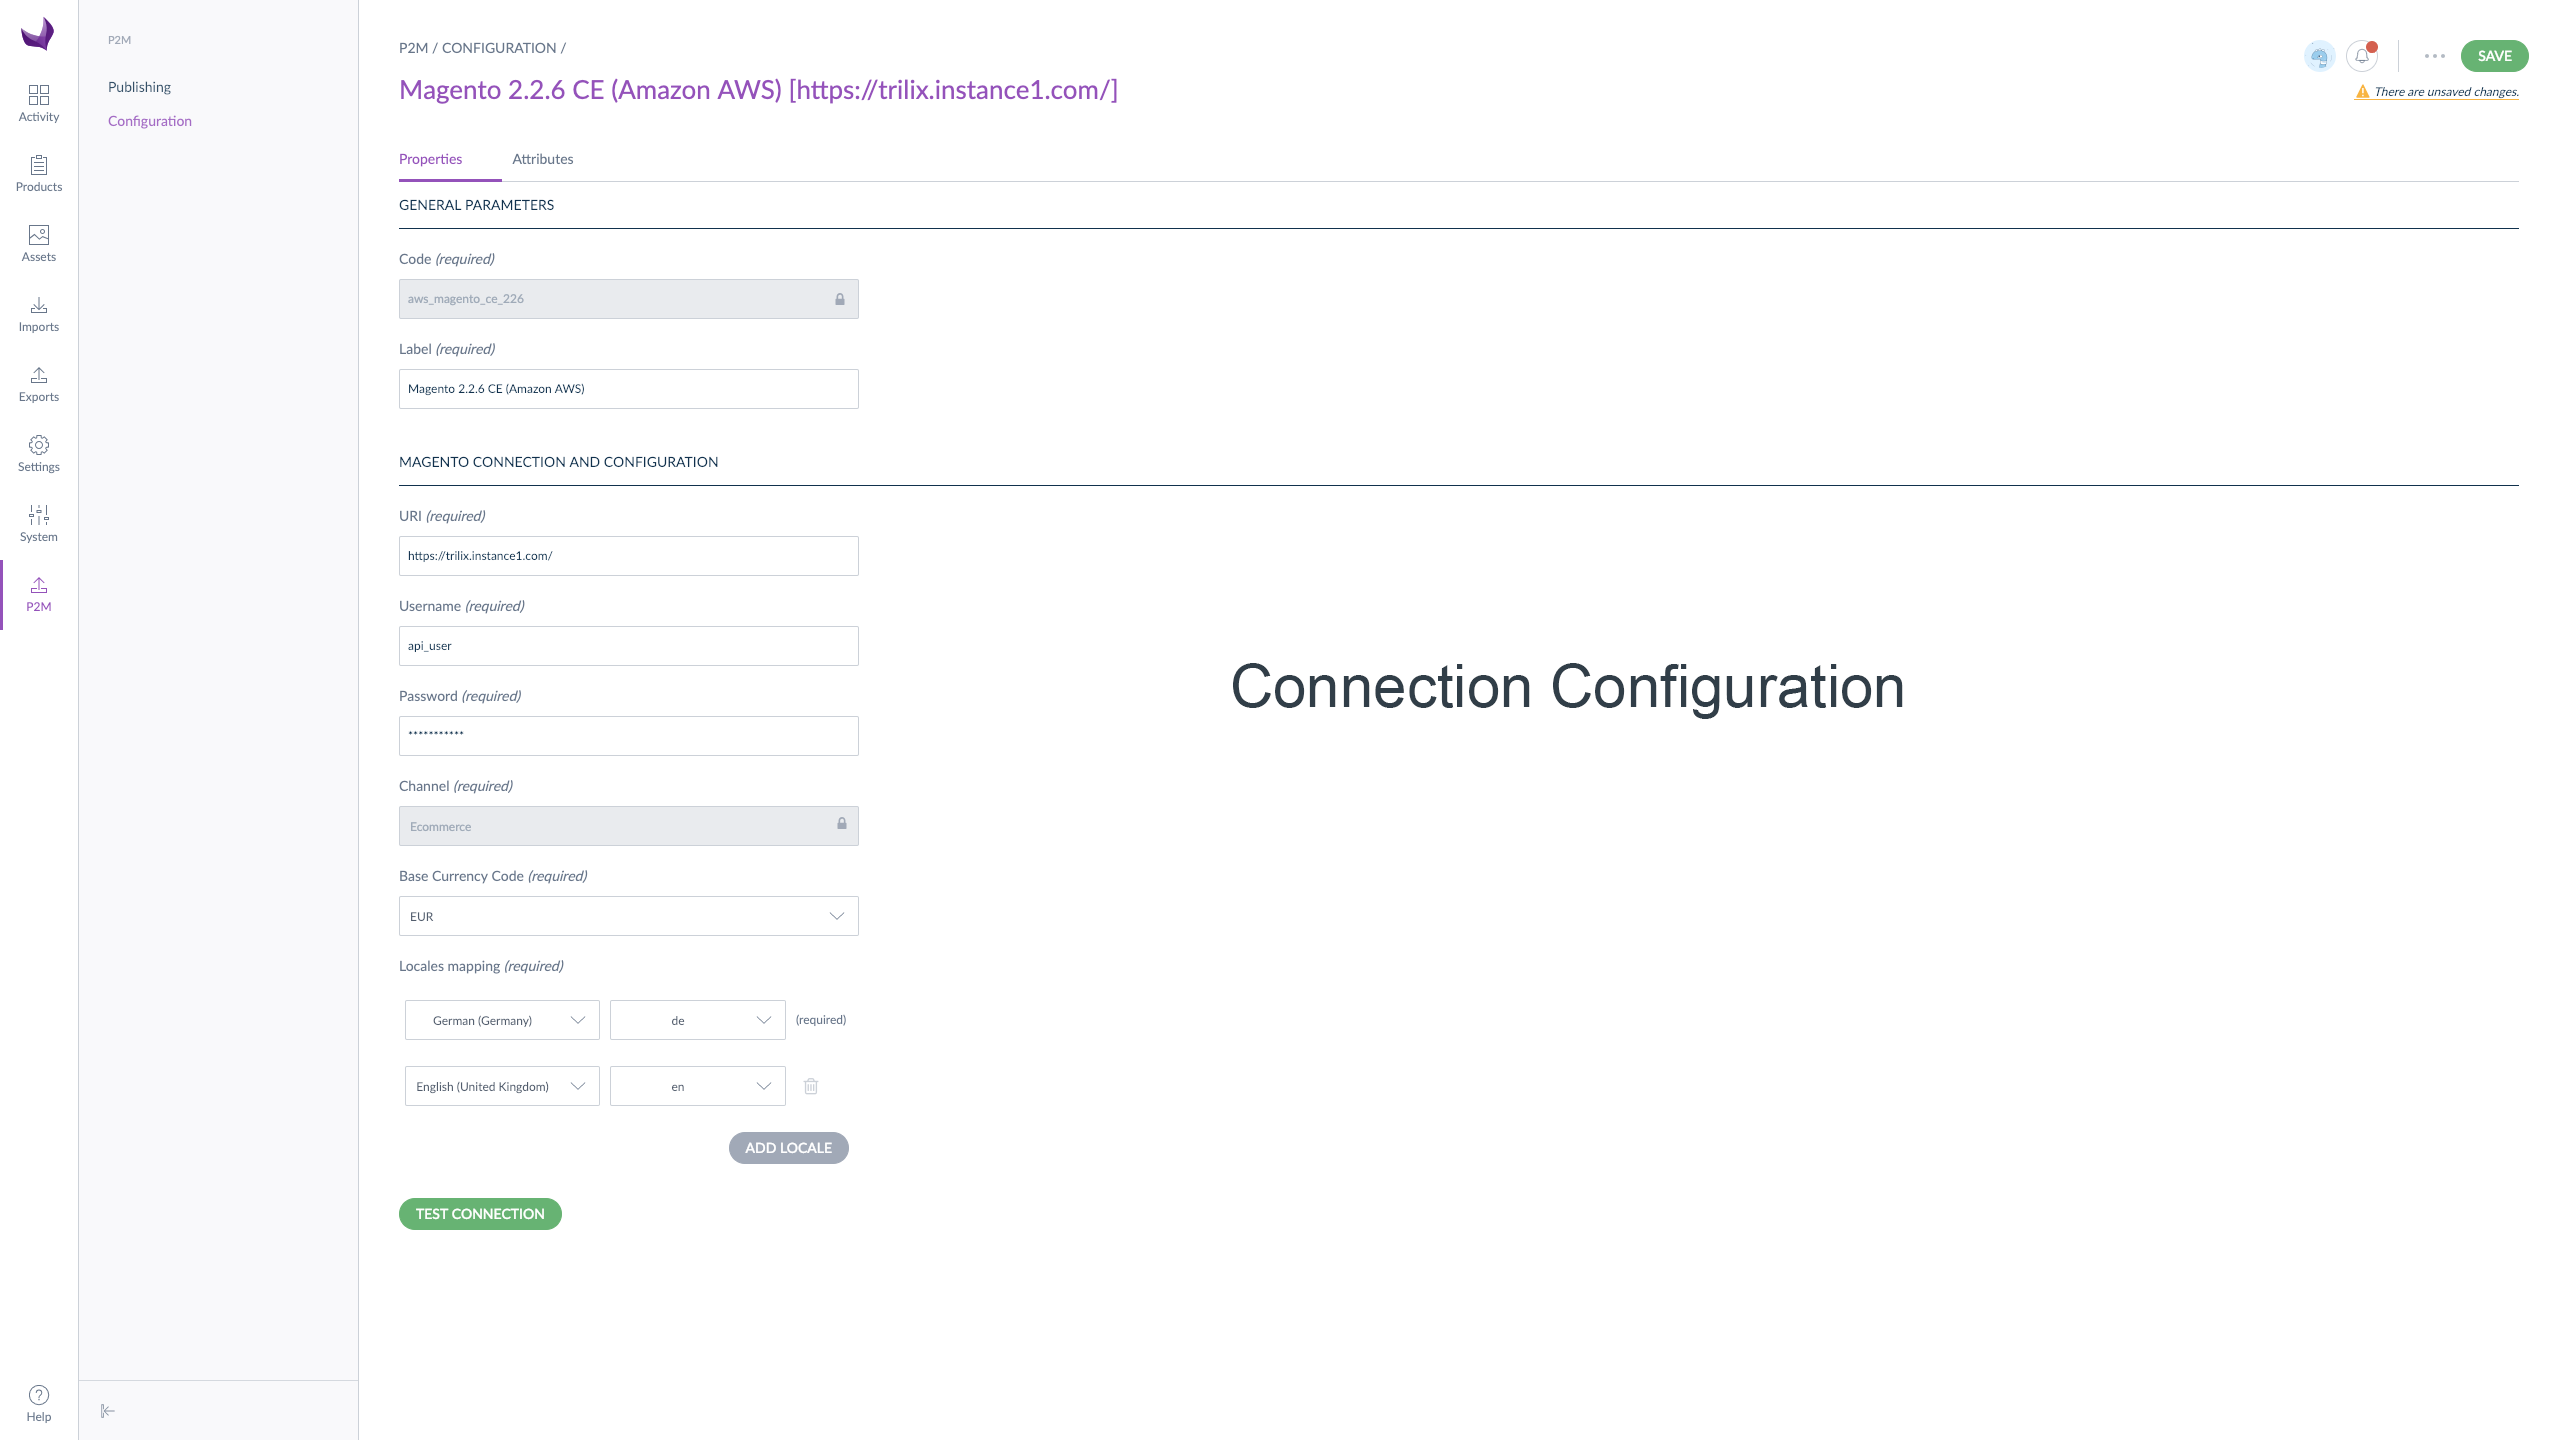 Connection Configuration